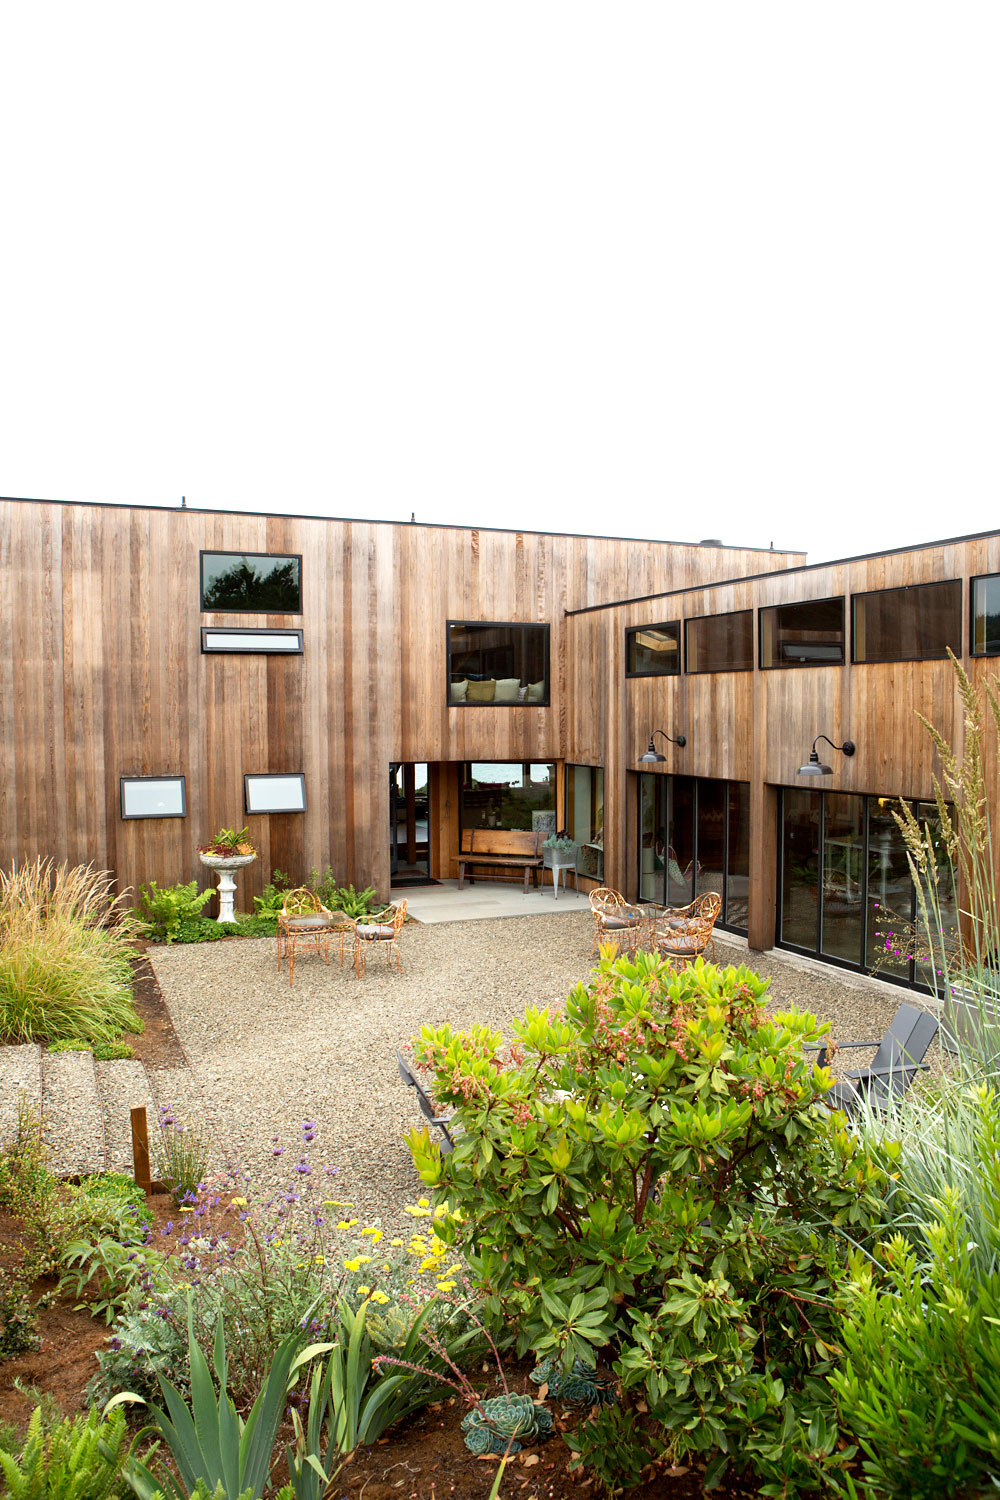 The outside plantings are designed to blend in with the natural environment